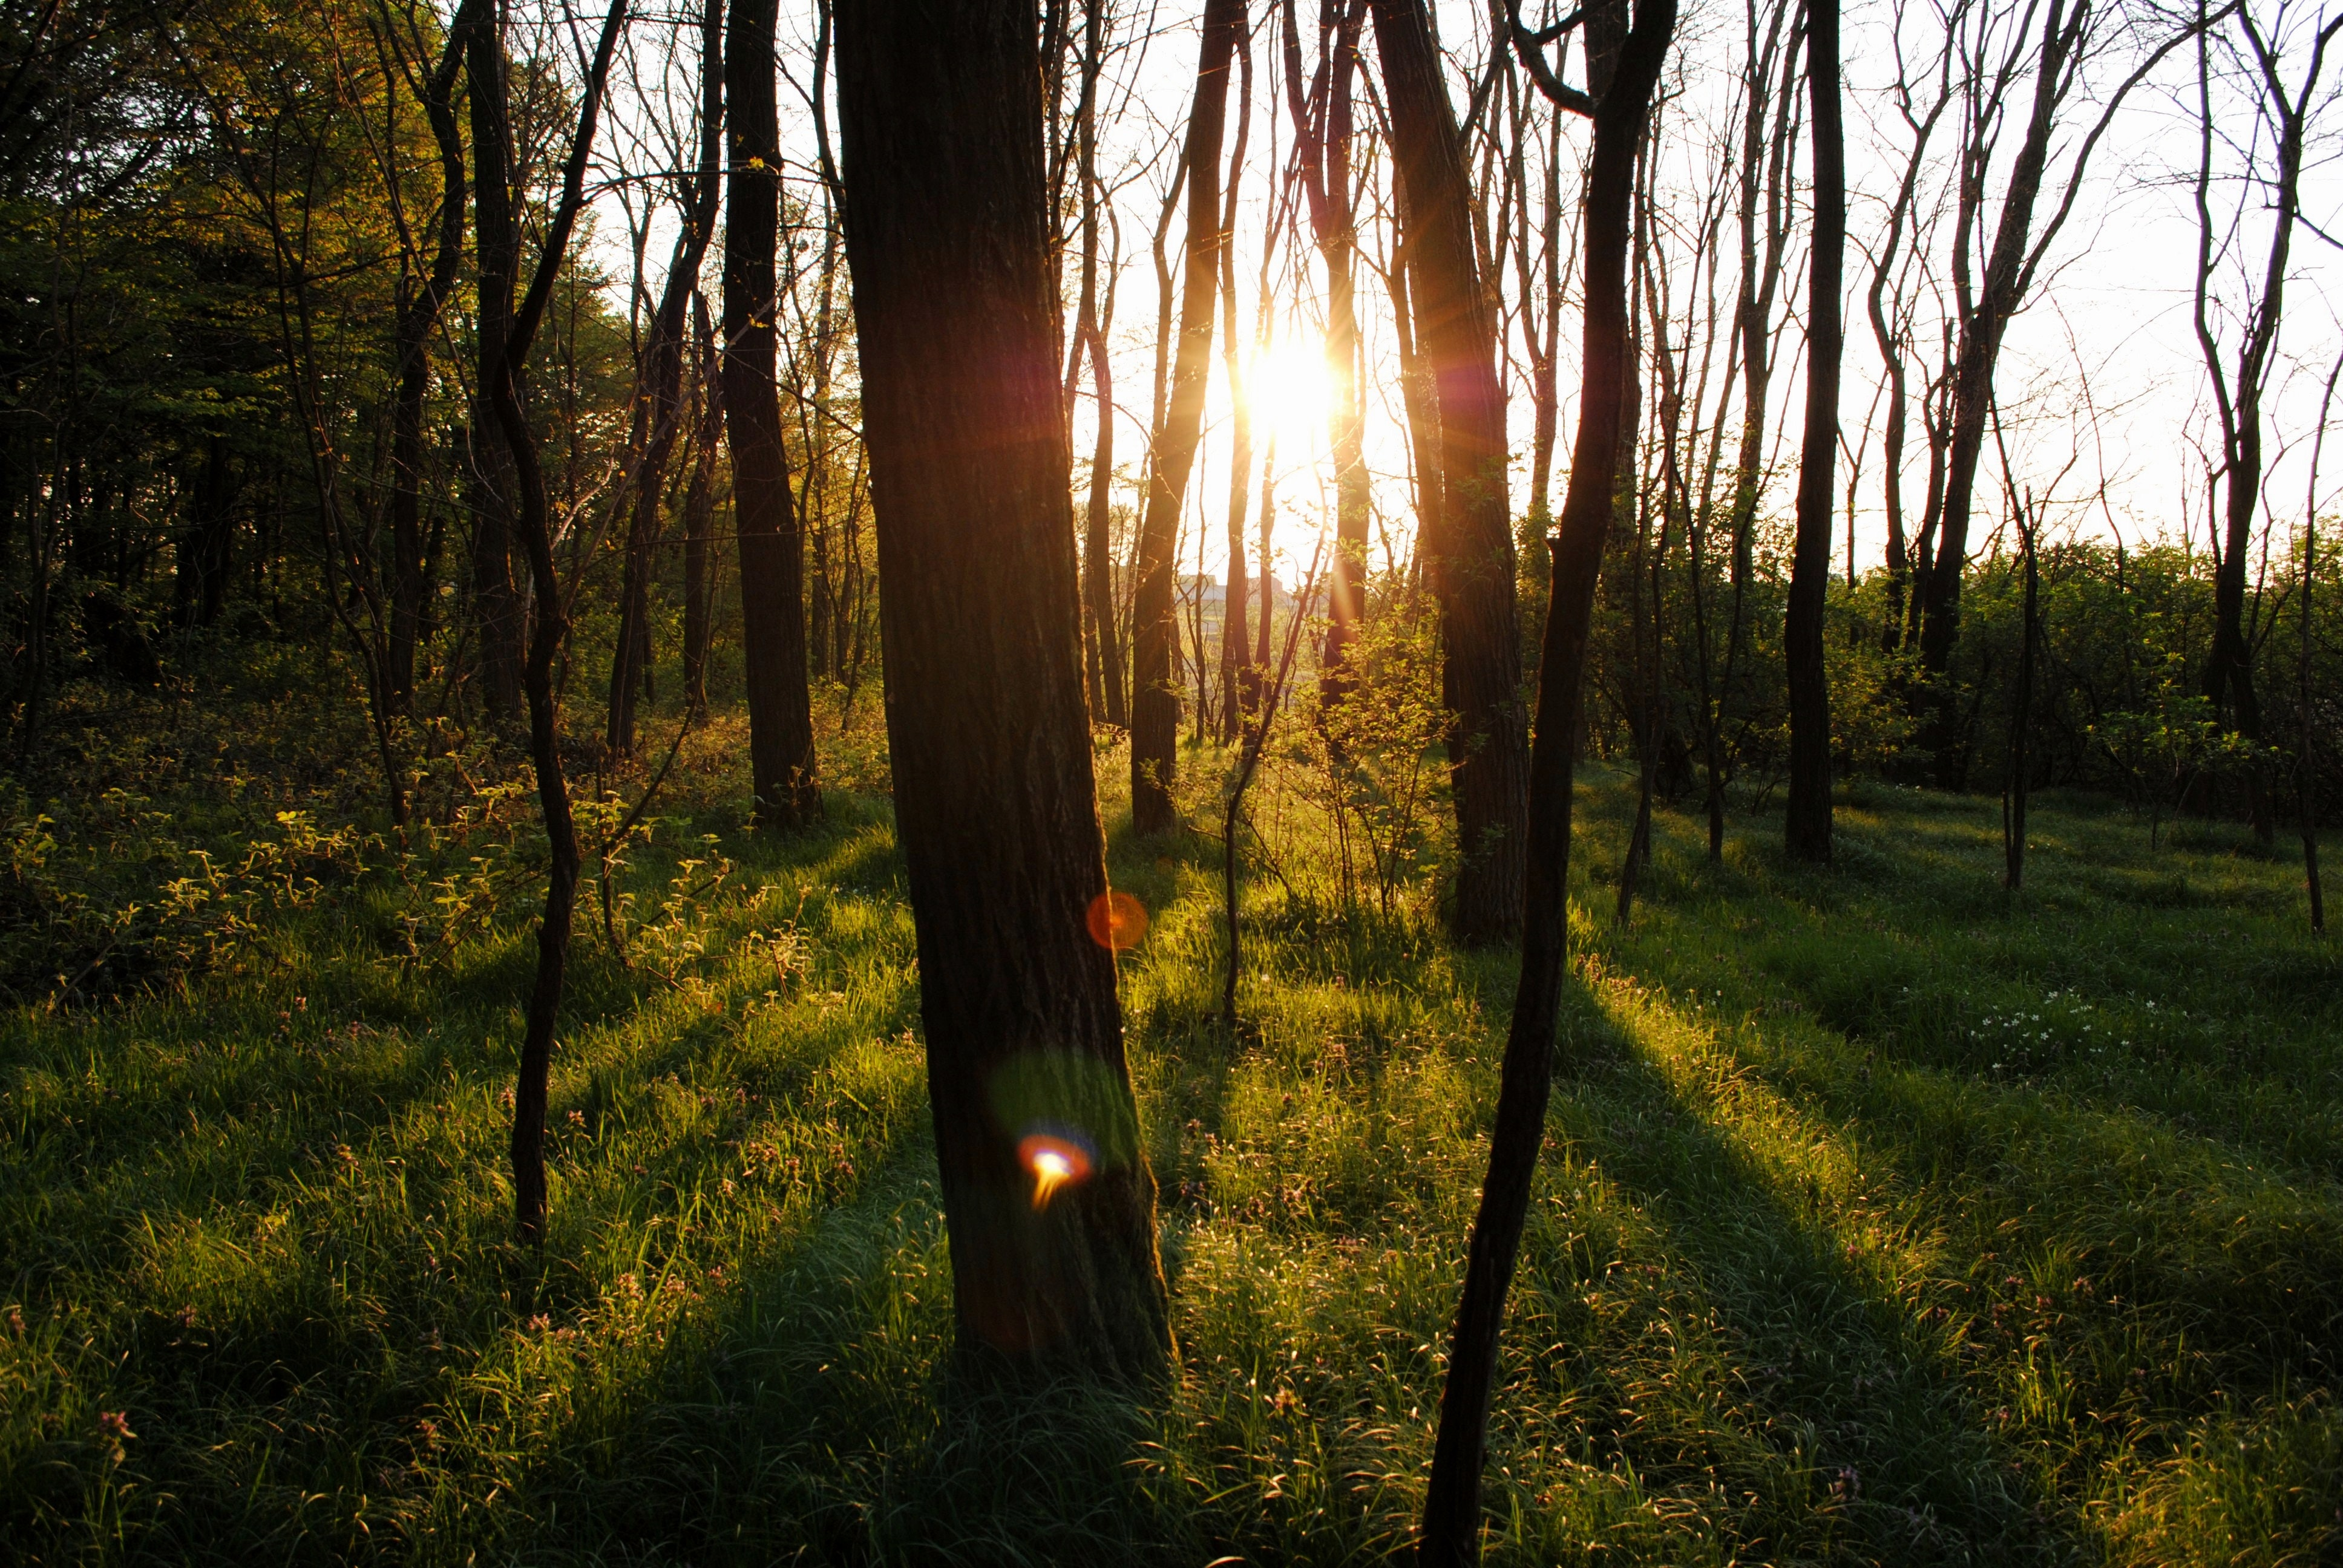 Sun shining through trees in forest photo